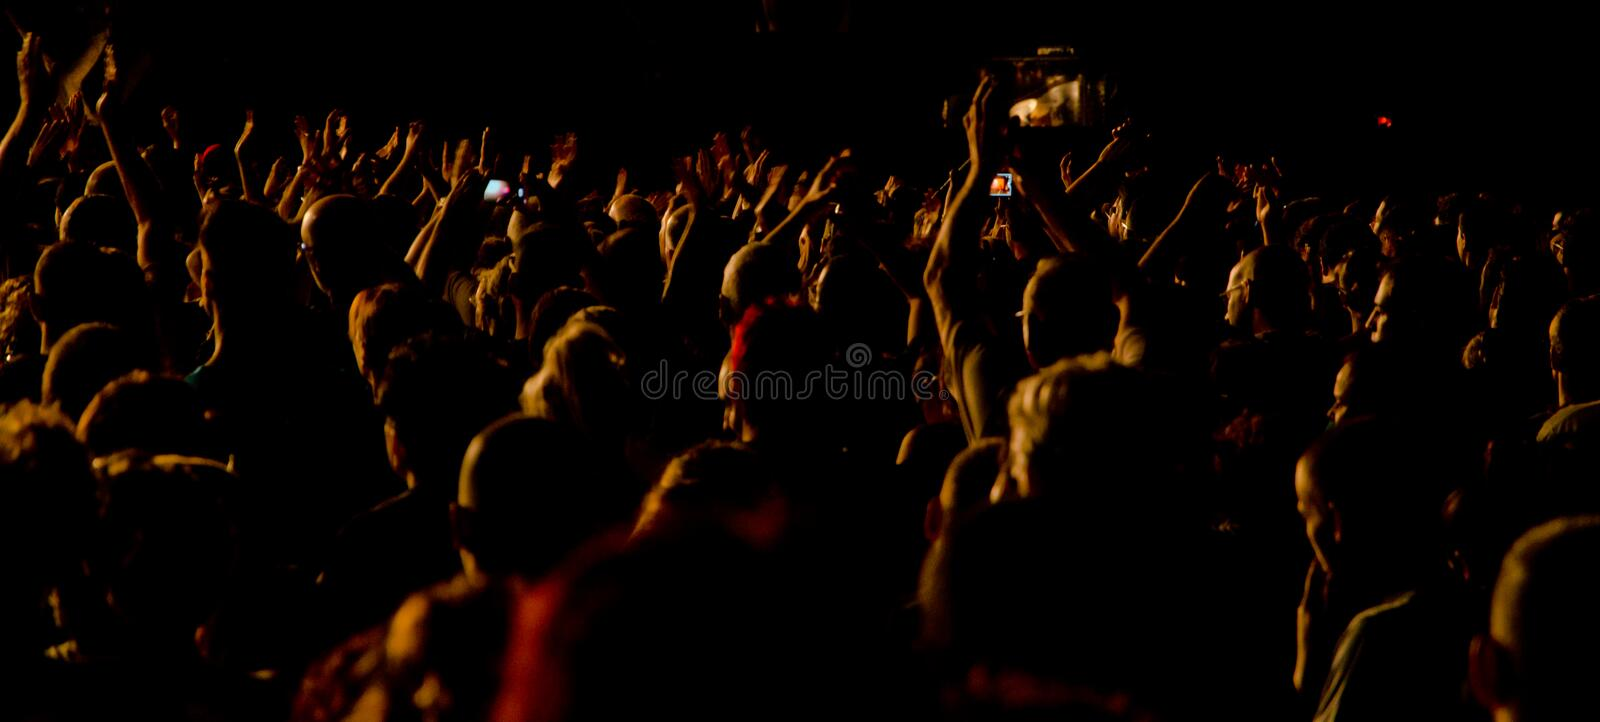 Audience at live concert. Large audience at live rock concert cheering with bright light at stage area royalty free stock image